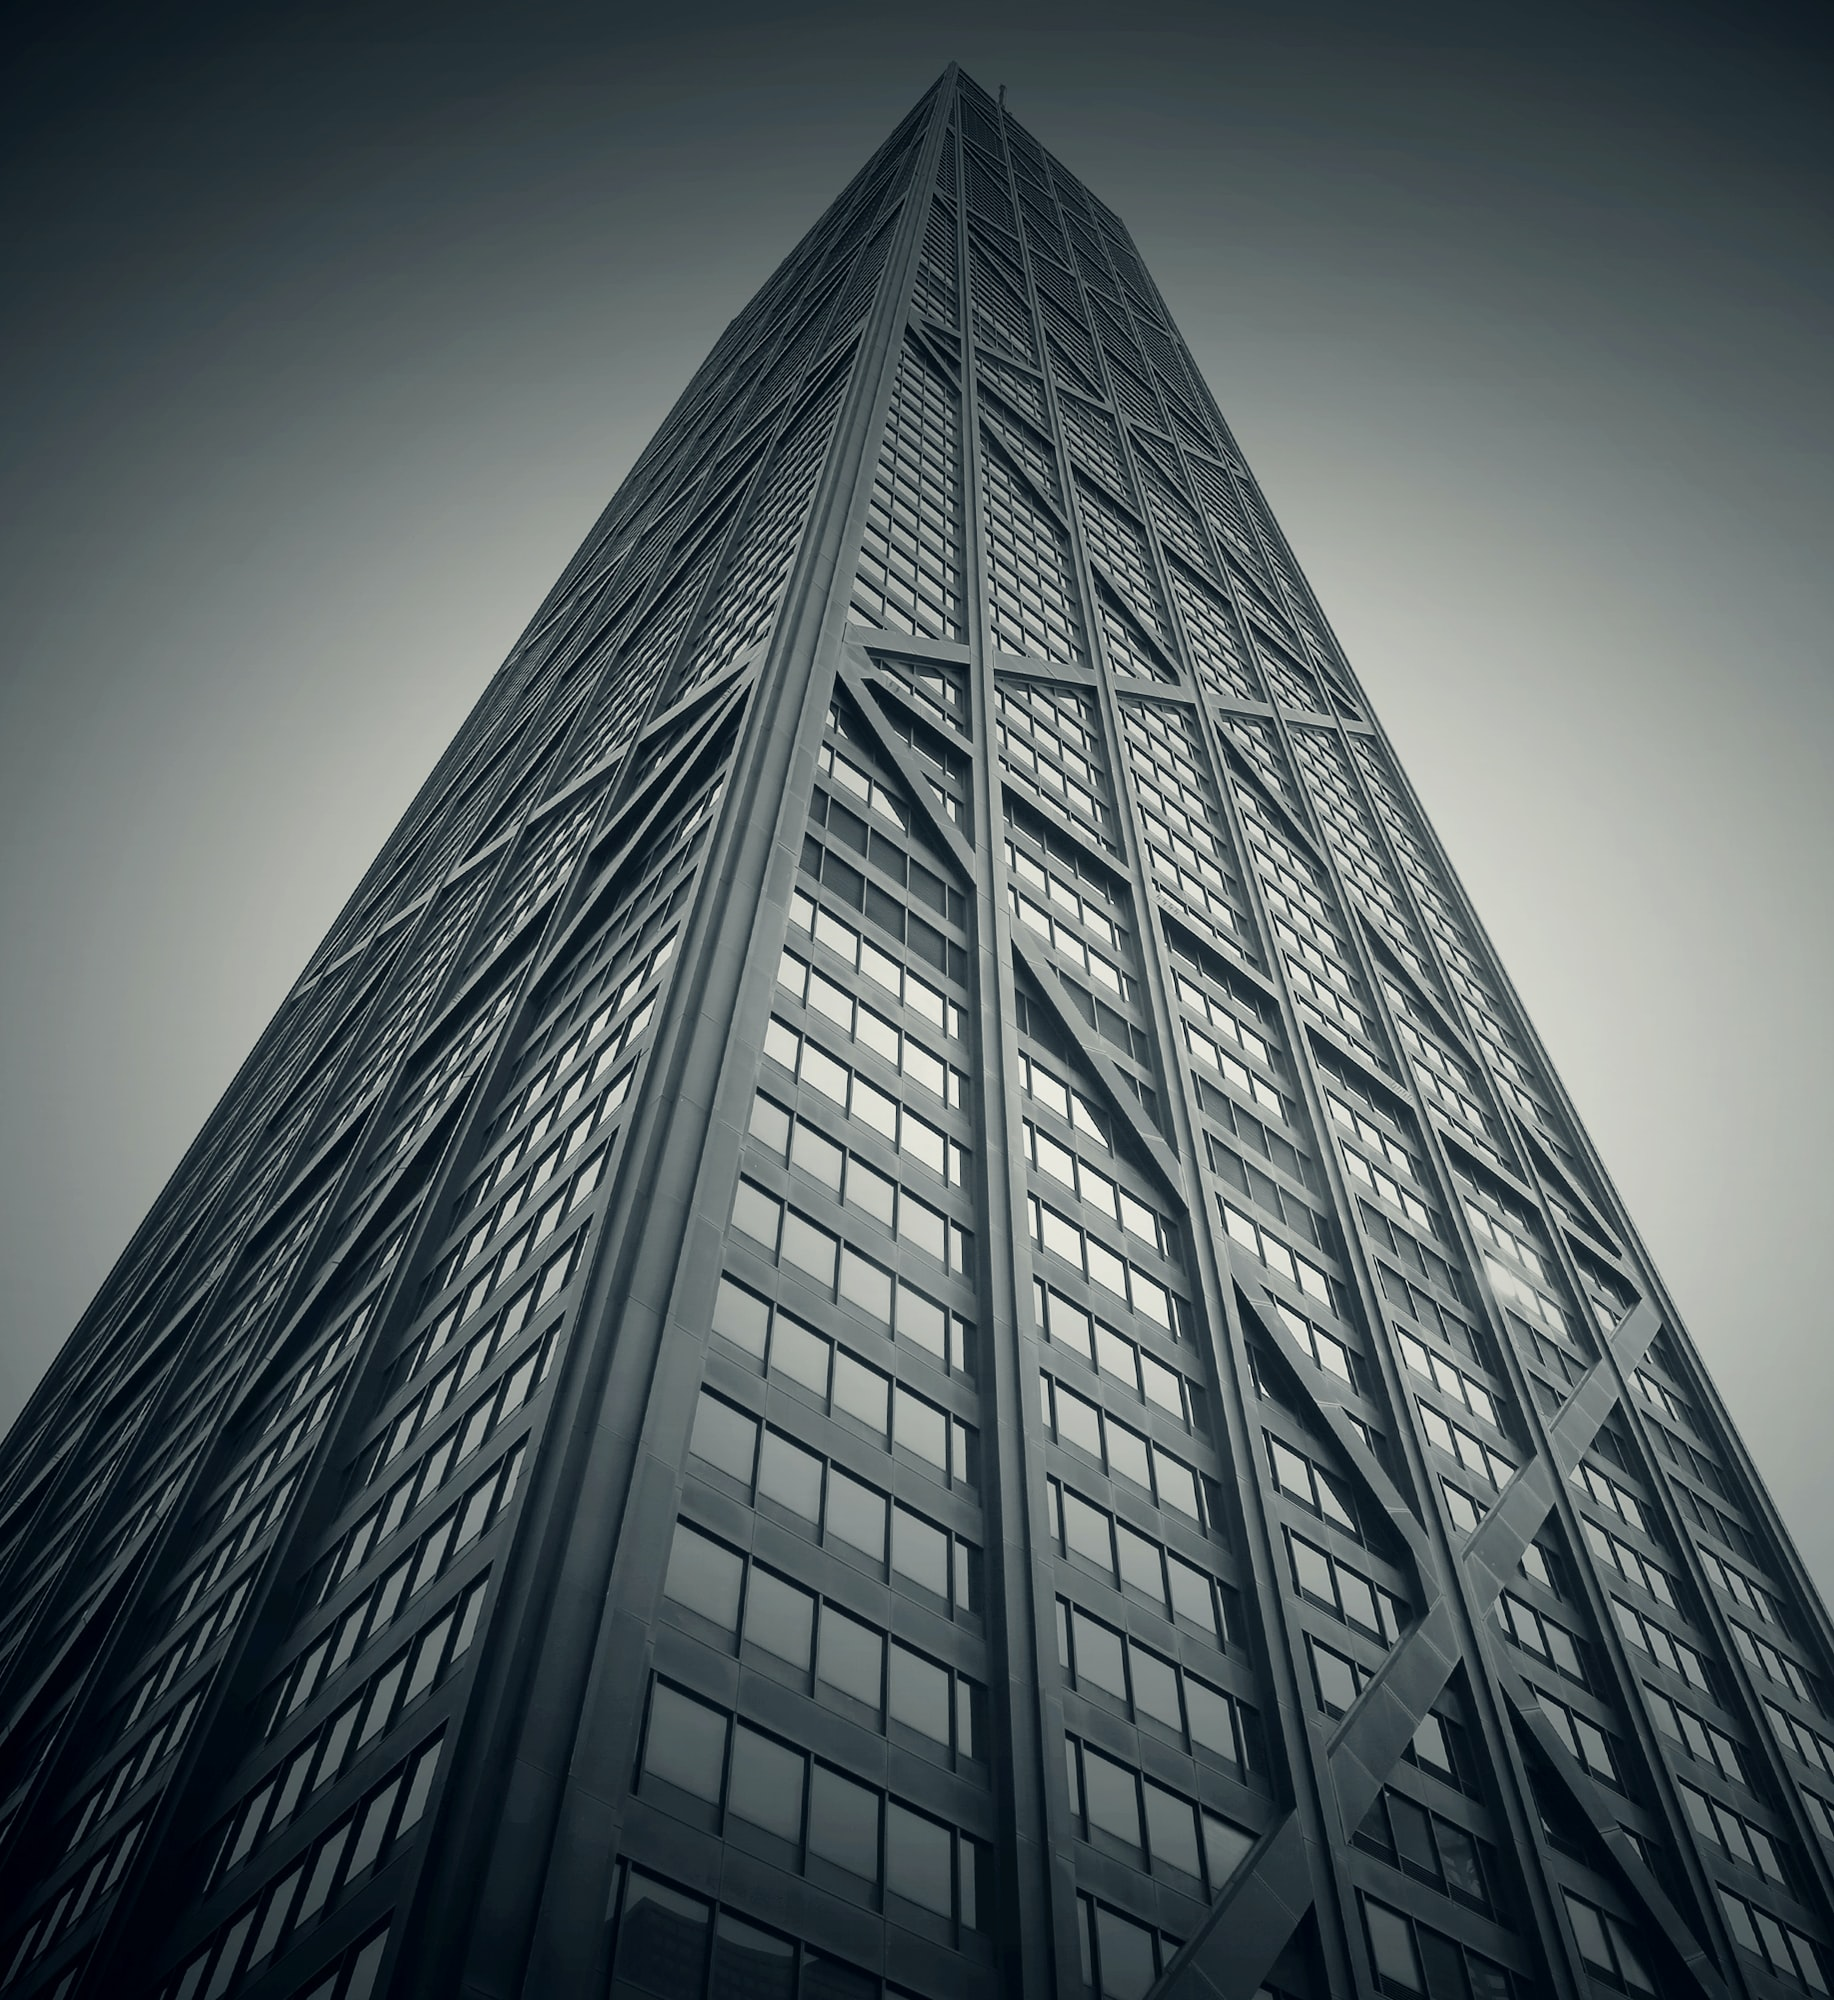 worm's eye-view photography of gray high-rise building